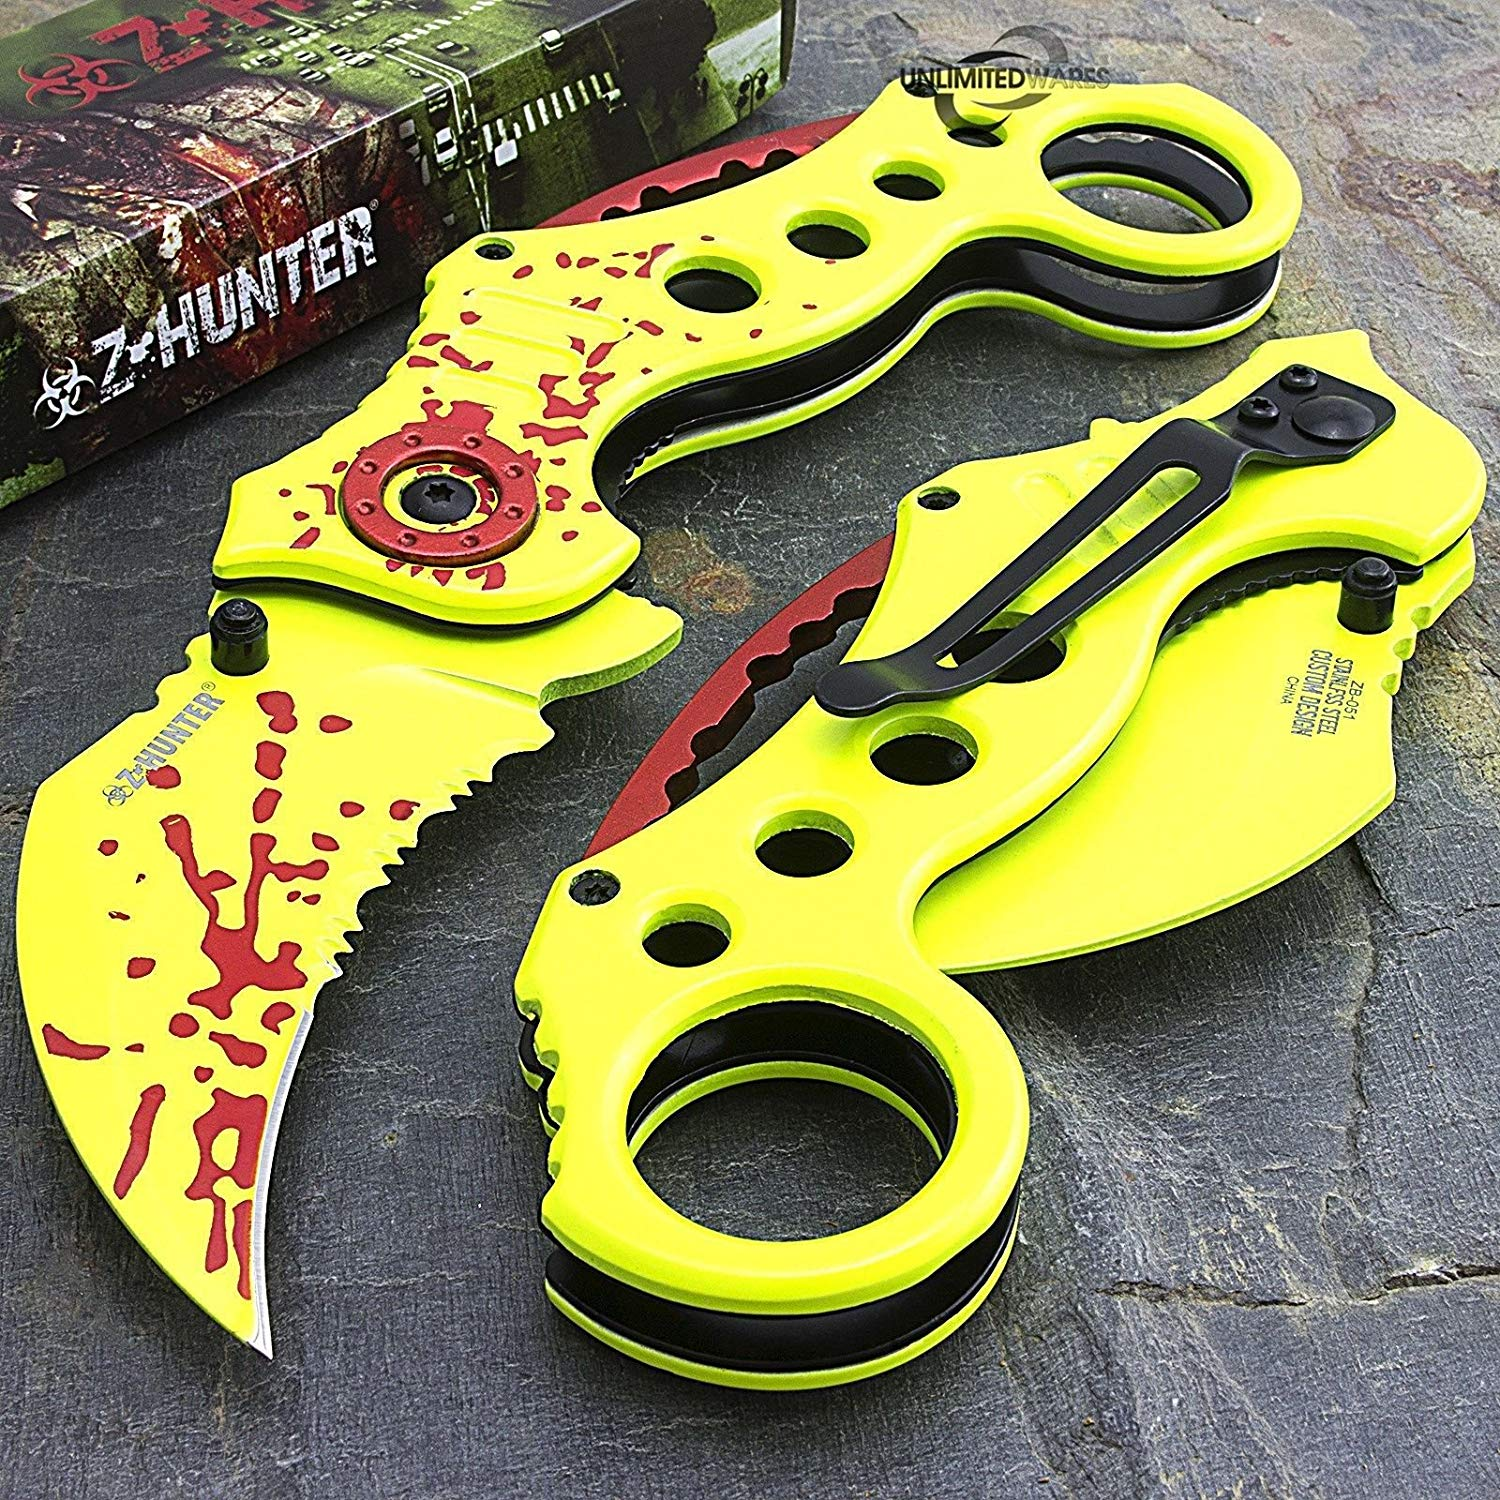 "Knife Tri 8"" ZOMBIE HUNTER KARAMBIT CLAW BLADE SPRING ASSISTED OPEN FOLDING POCKET KNIFE"